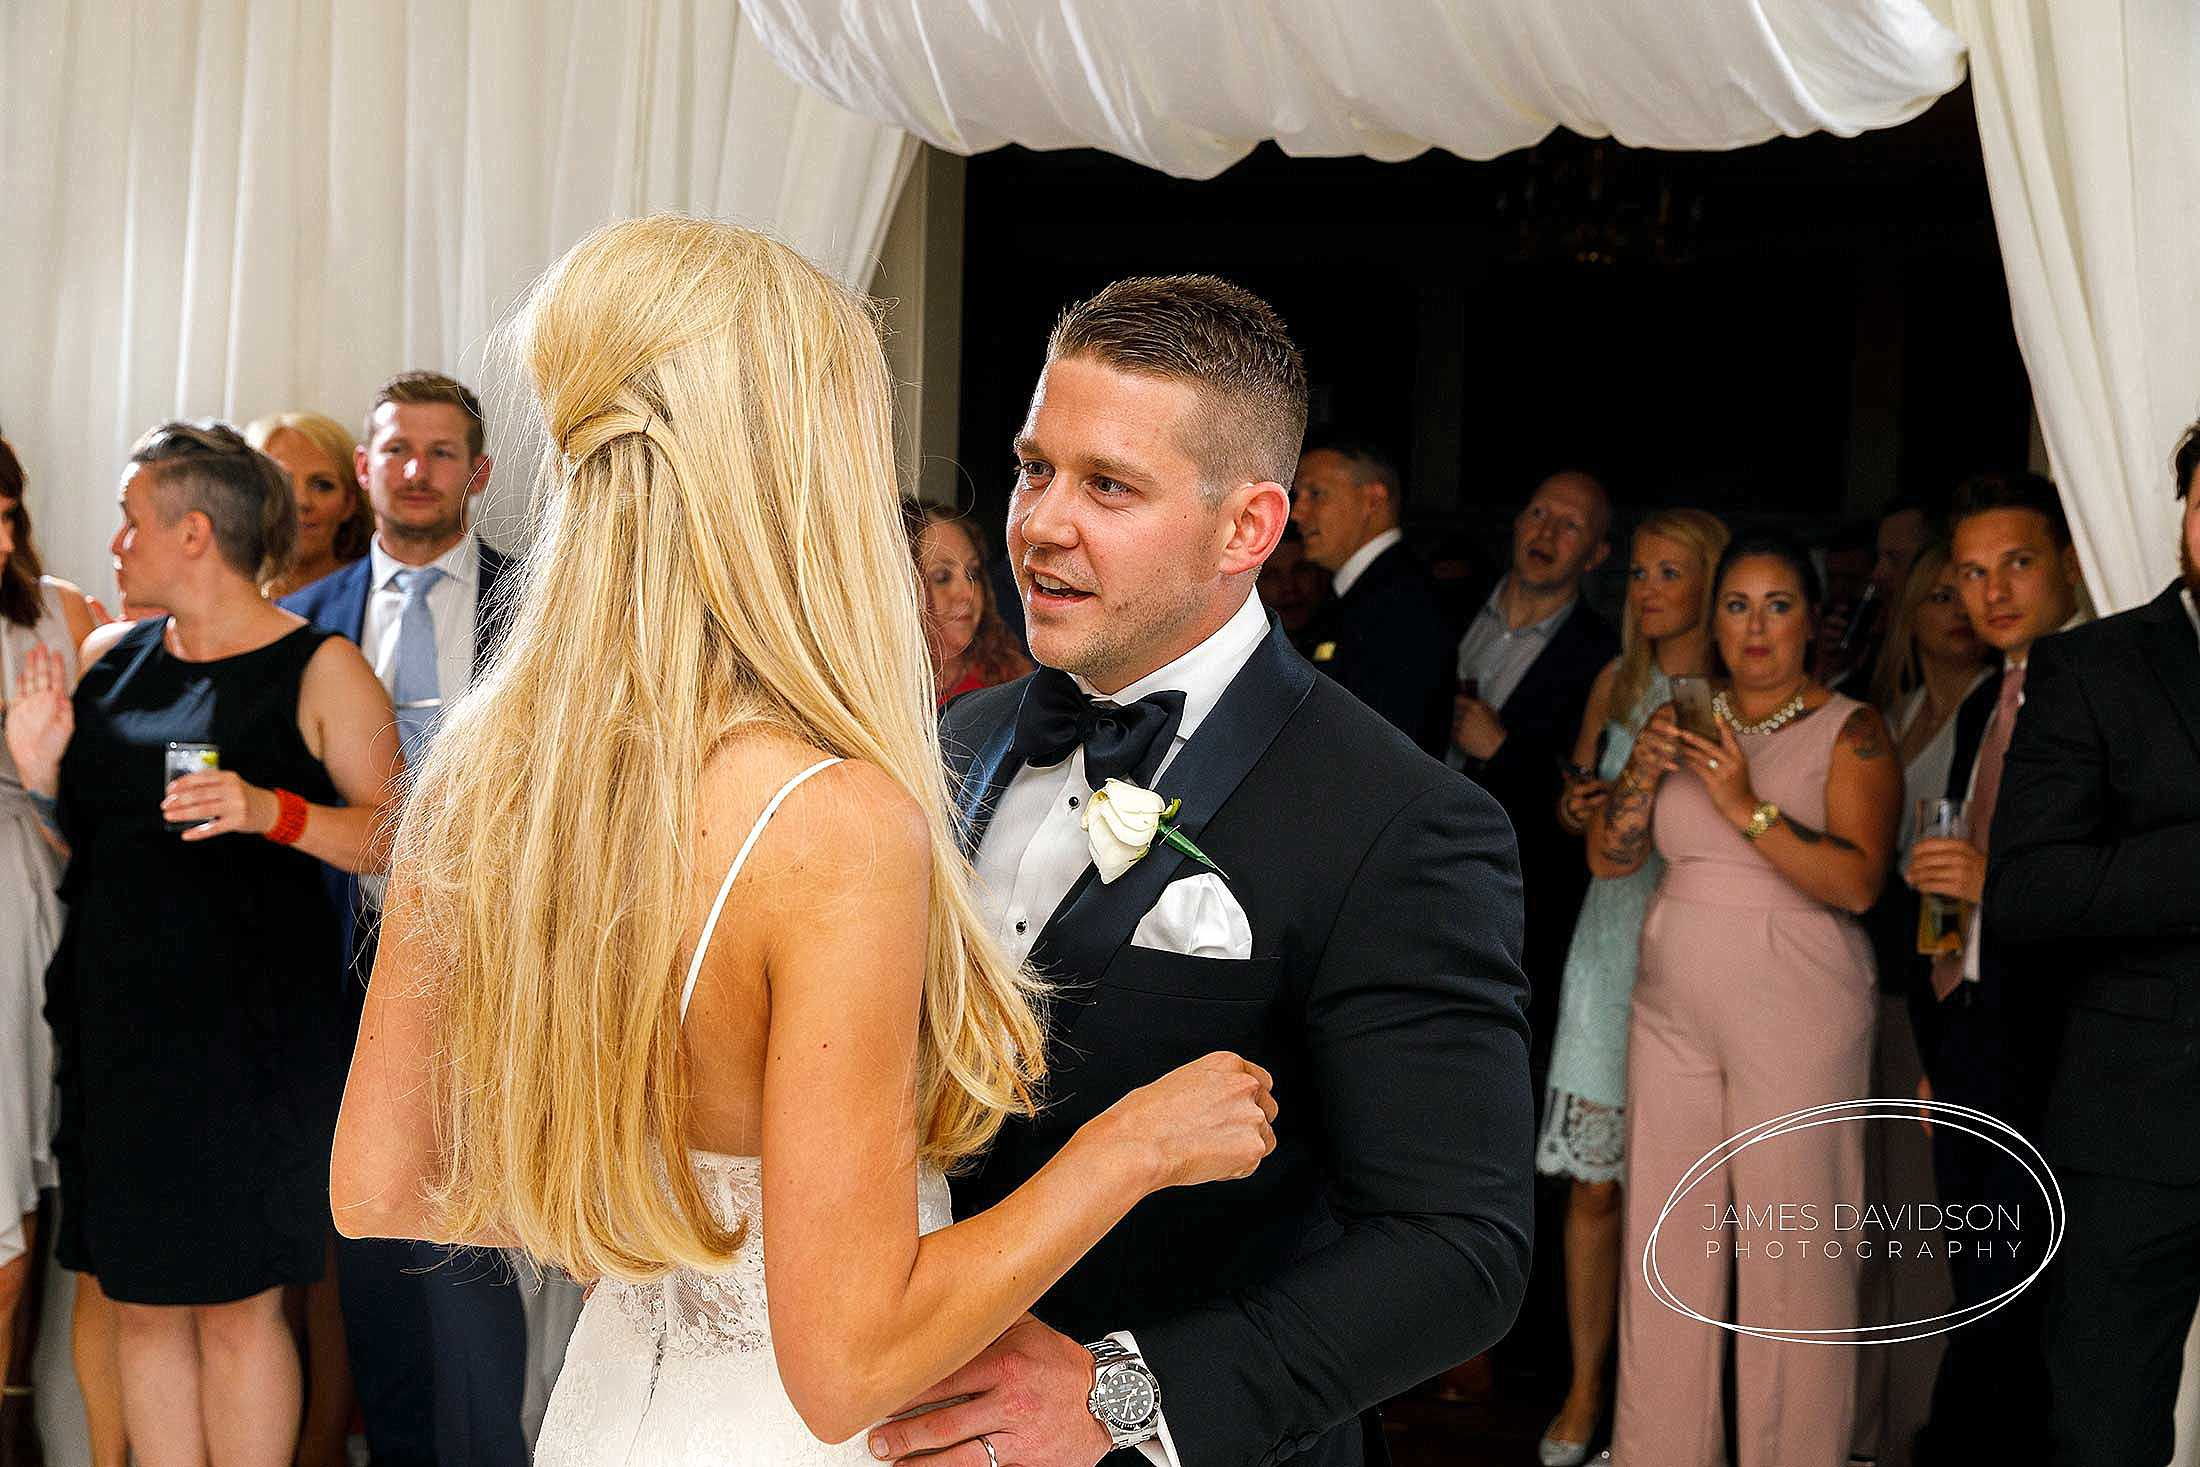 gosfield-hall-wedding-photography-154